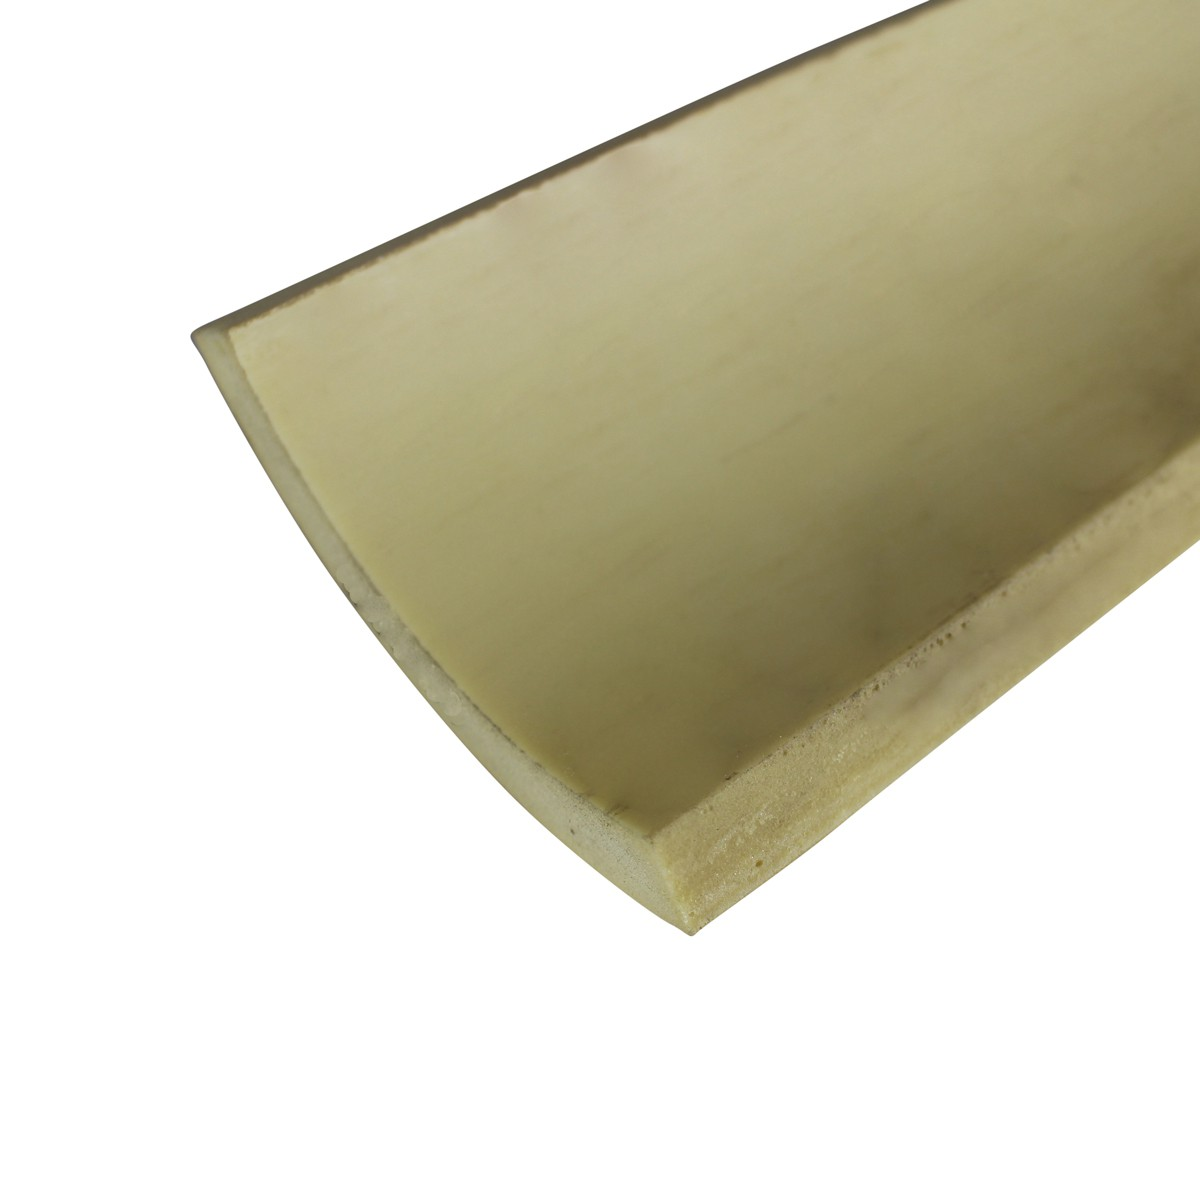 Cornice White Urethane Sample of 11744 24 Long Cornice Cornice Moulding Cornice Molding